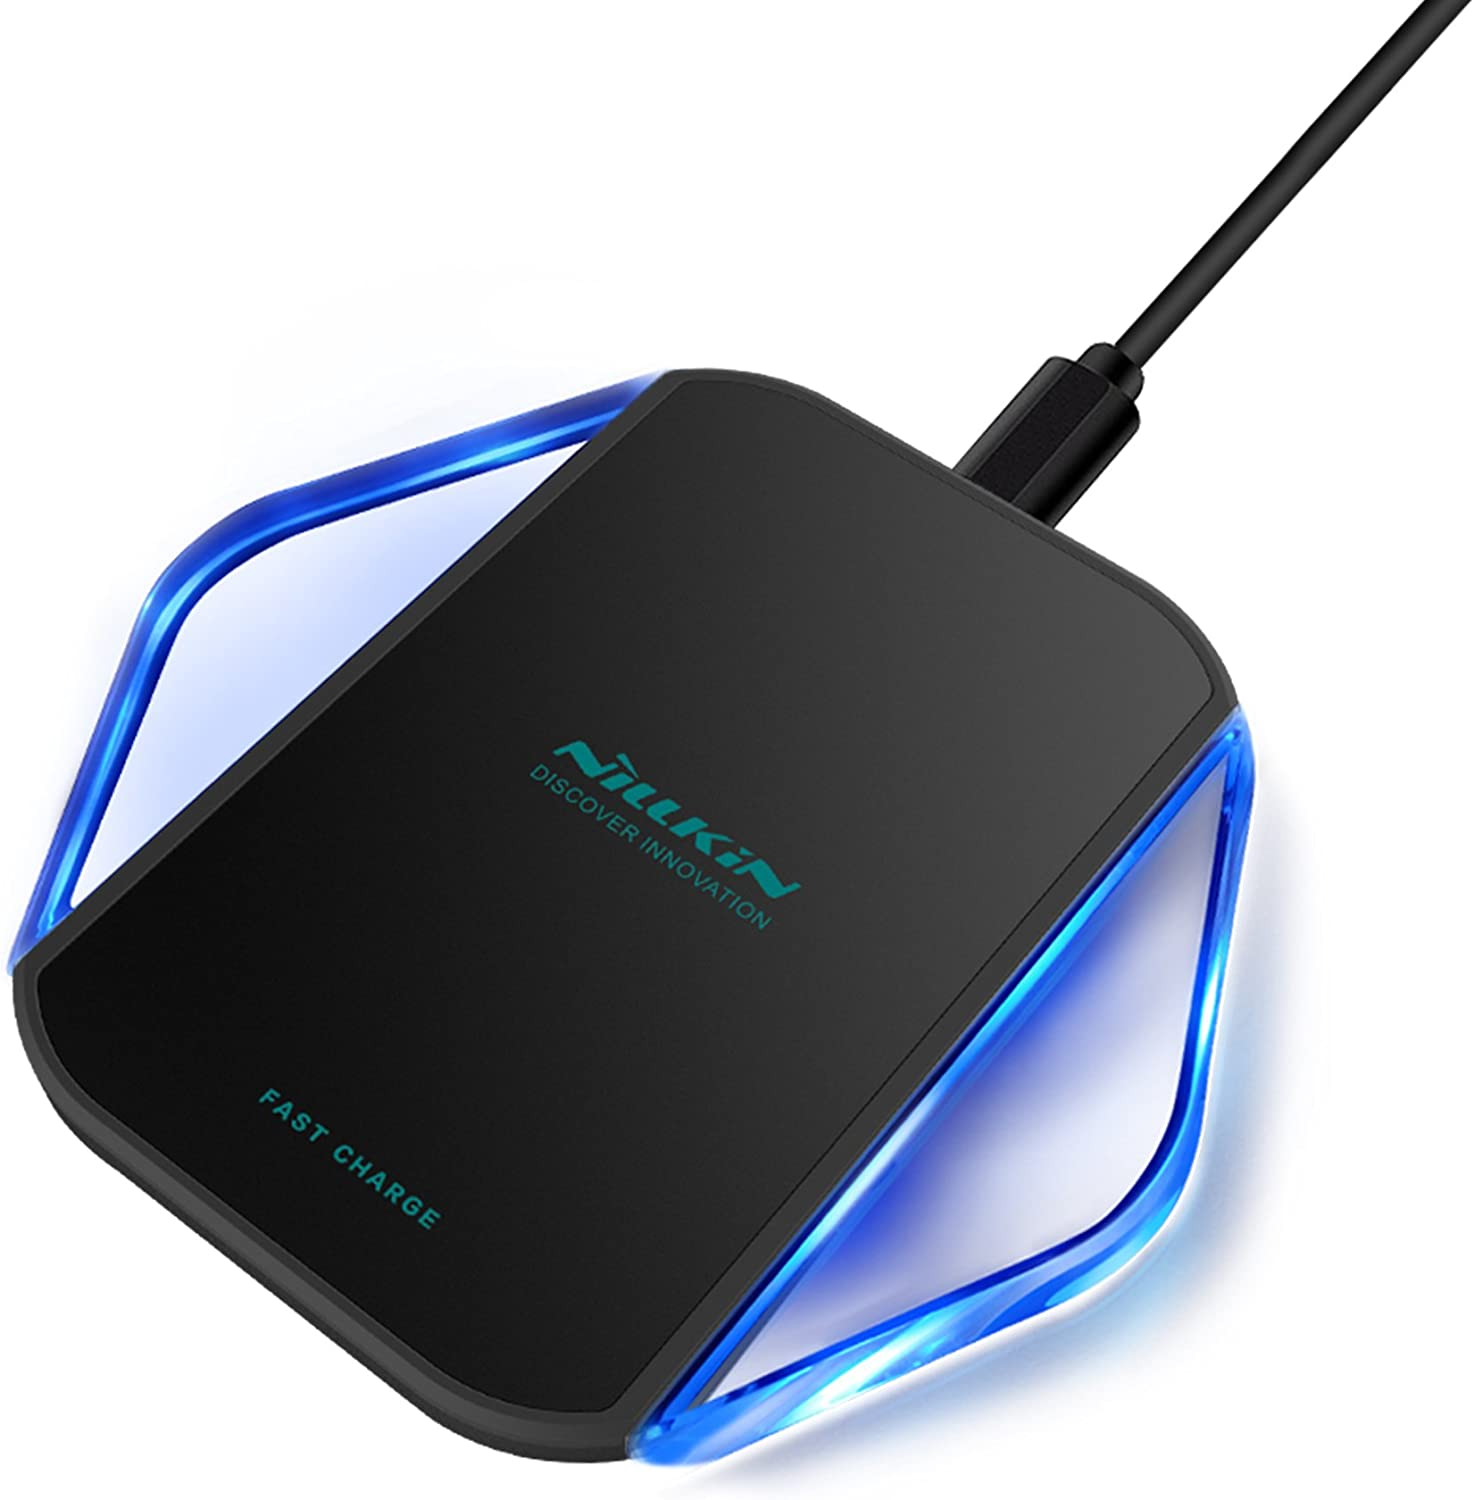 Wireless Charger, Nillkin Magic Cube Wireless Charging Pad [Fast Charge Version] for iPhone Xs Max/XR/XS/X/8/8 Plus, Pixel 3/3XL, Samsung Galaxy Note 9/S10/S10 Plus and More - Black